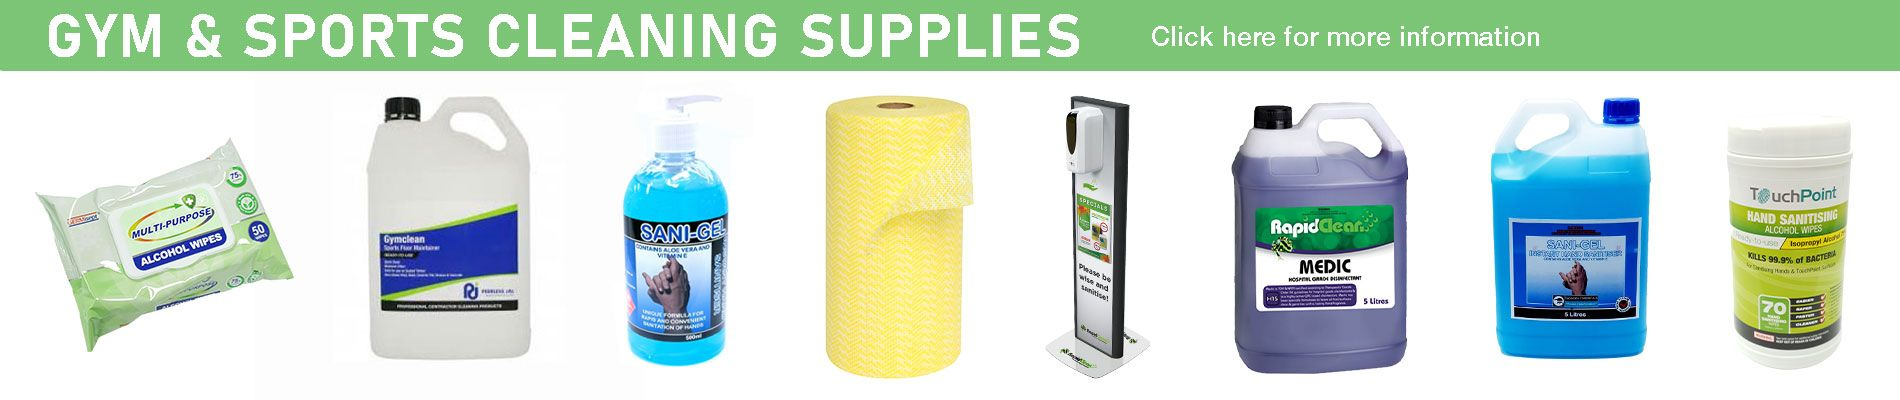 Gym and Sports Cleaning Supplies